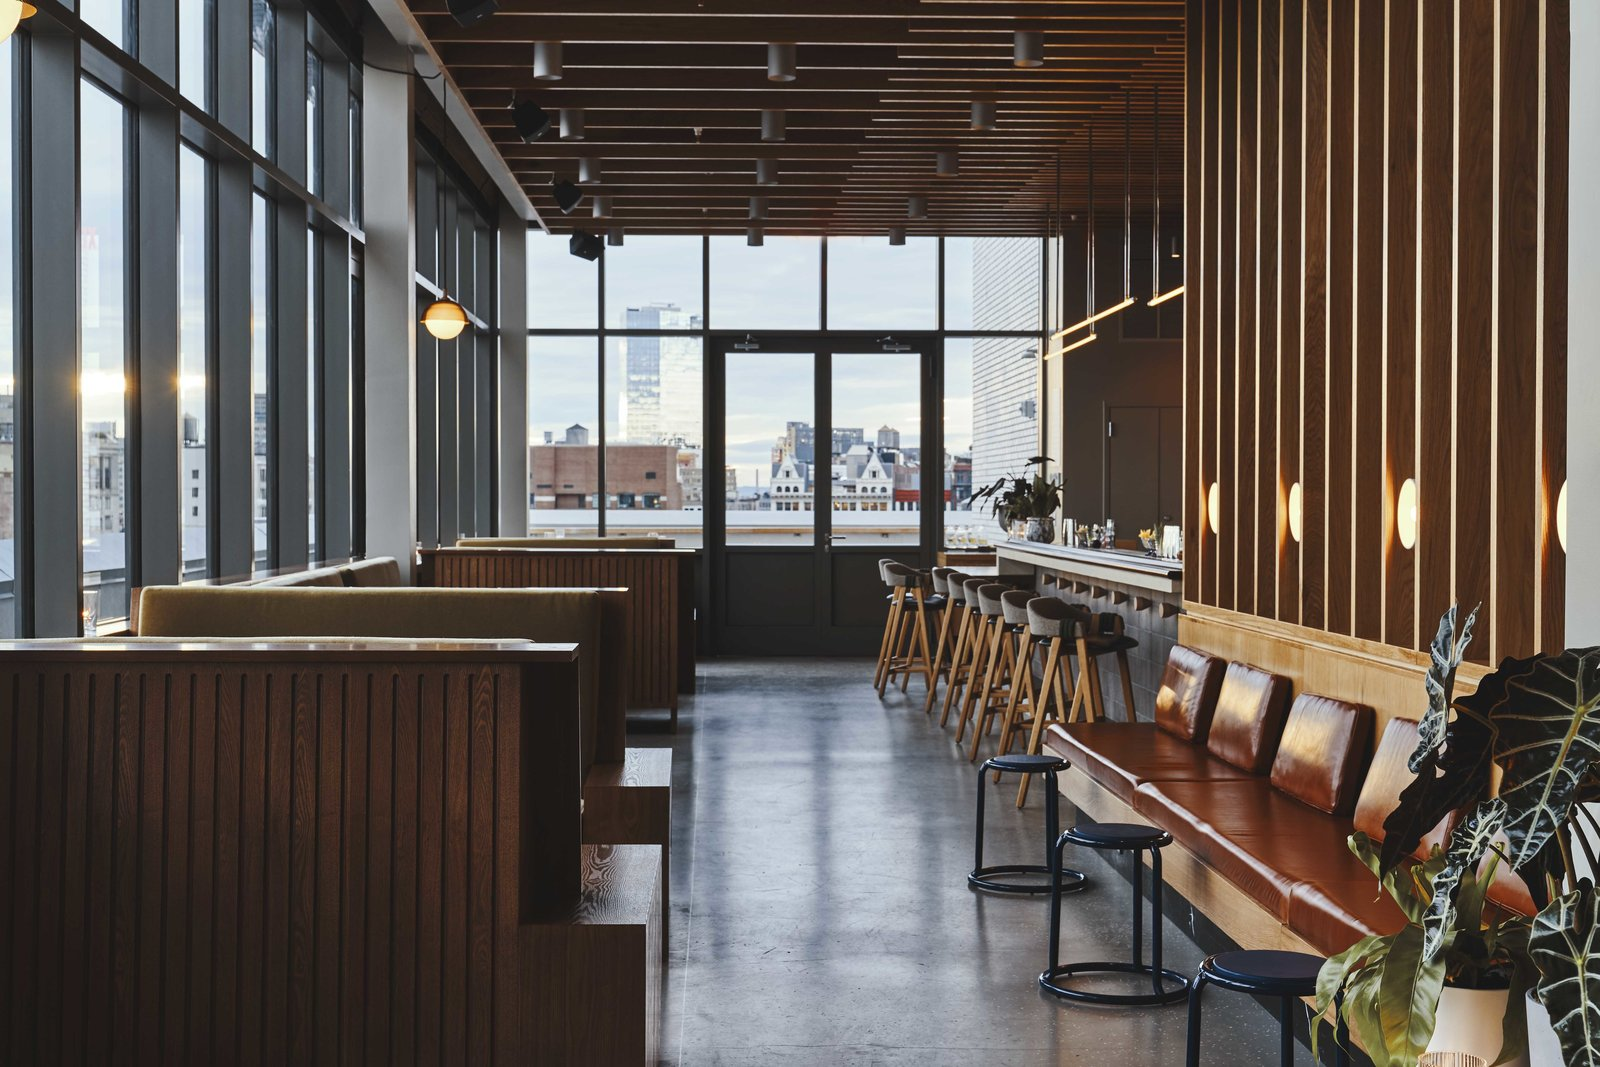 Dining, Ceiling, Bench, Table, Bar, Lamps, Chair, Stools, Concrete, Wall, Accent, Track, and Pendant Last Night is permeated with wood slats, creating a warm space to sip and mingle.  Best Dining Accent Wall Ceiling Lamps Photos from Ace Hotel's Sister City Opens in New York—and it's a Beaut